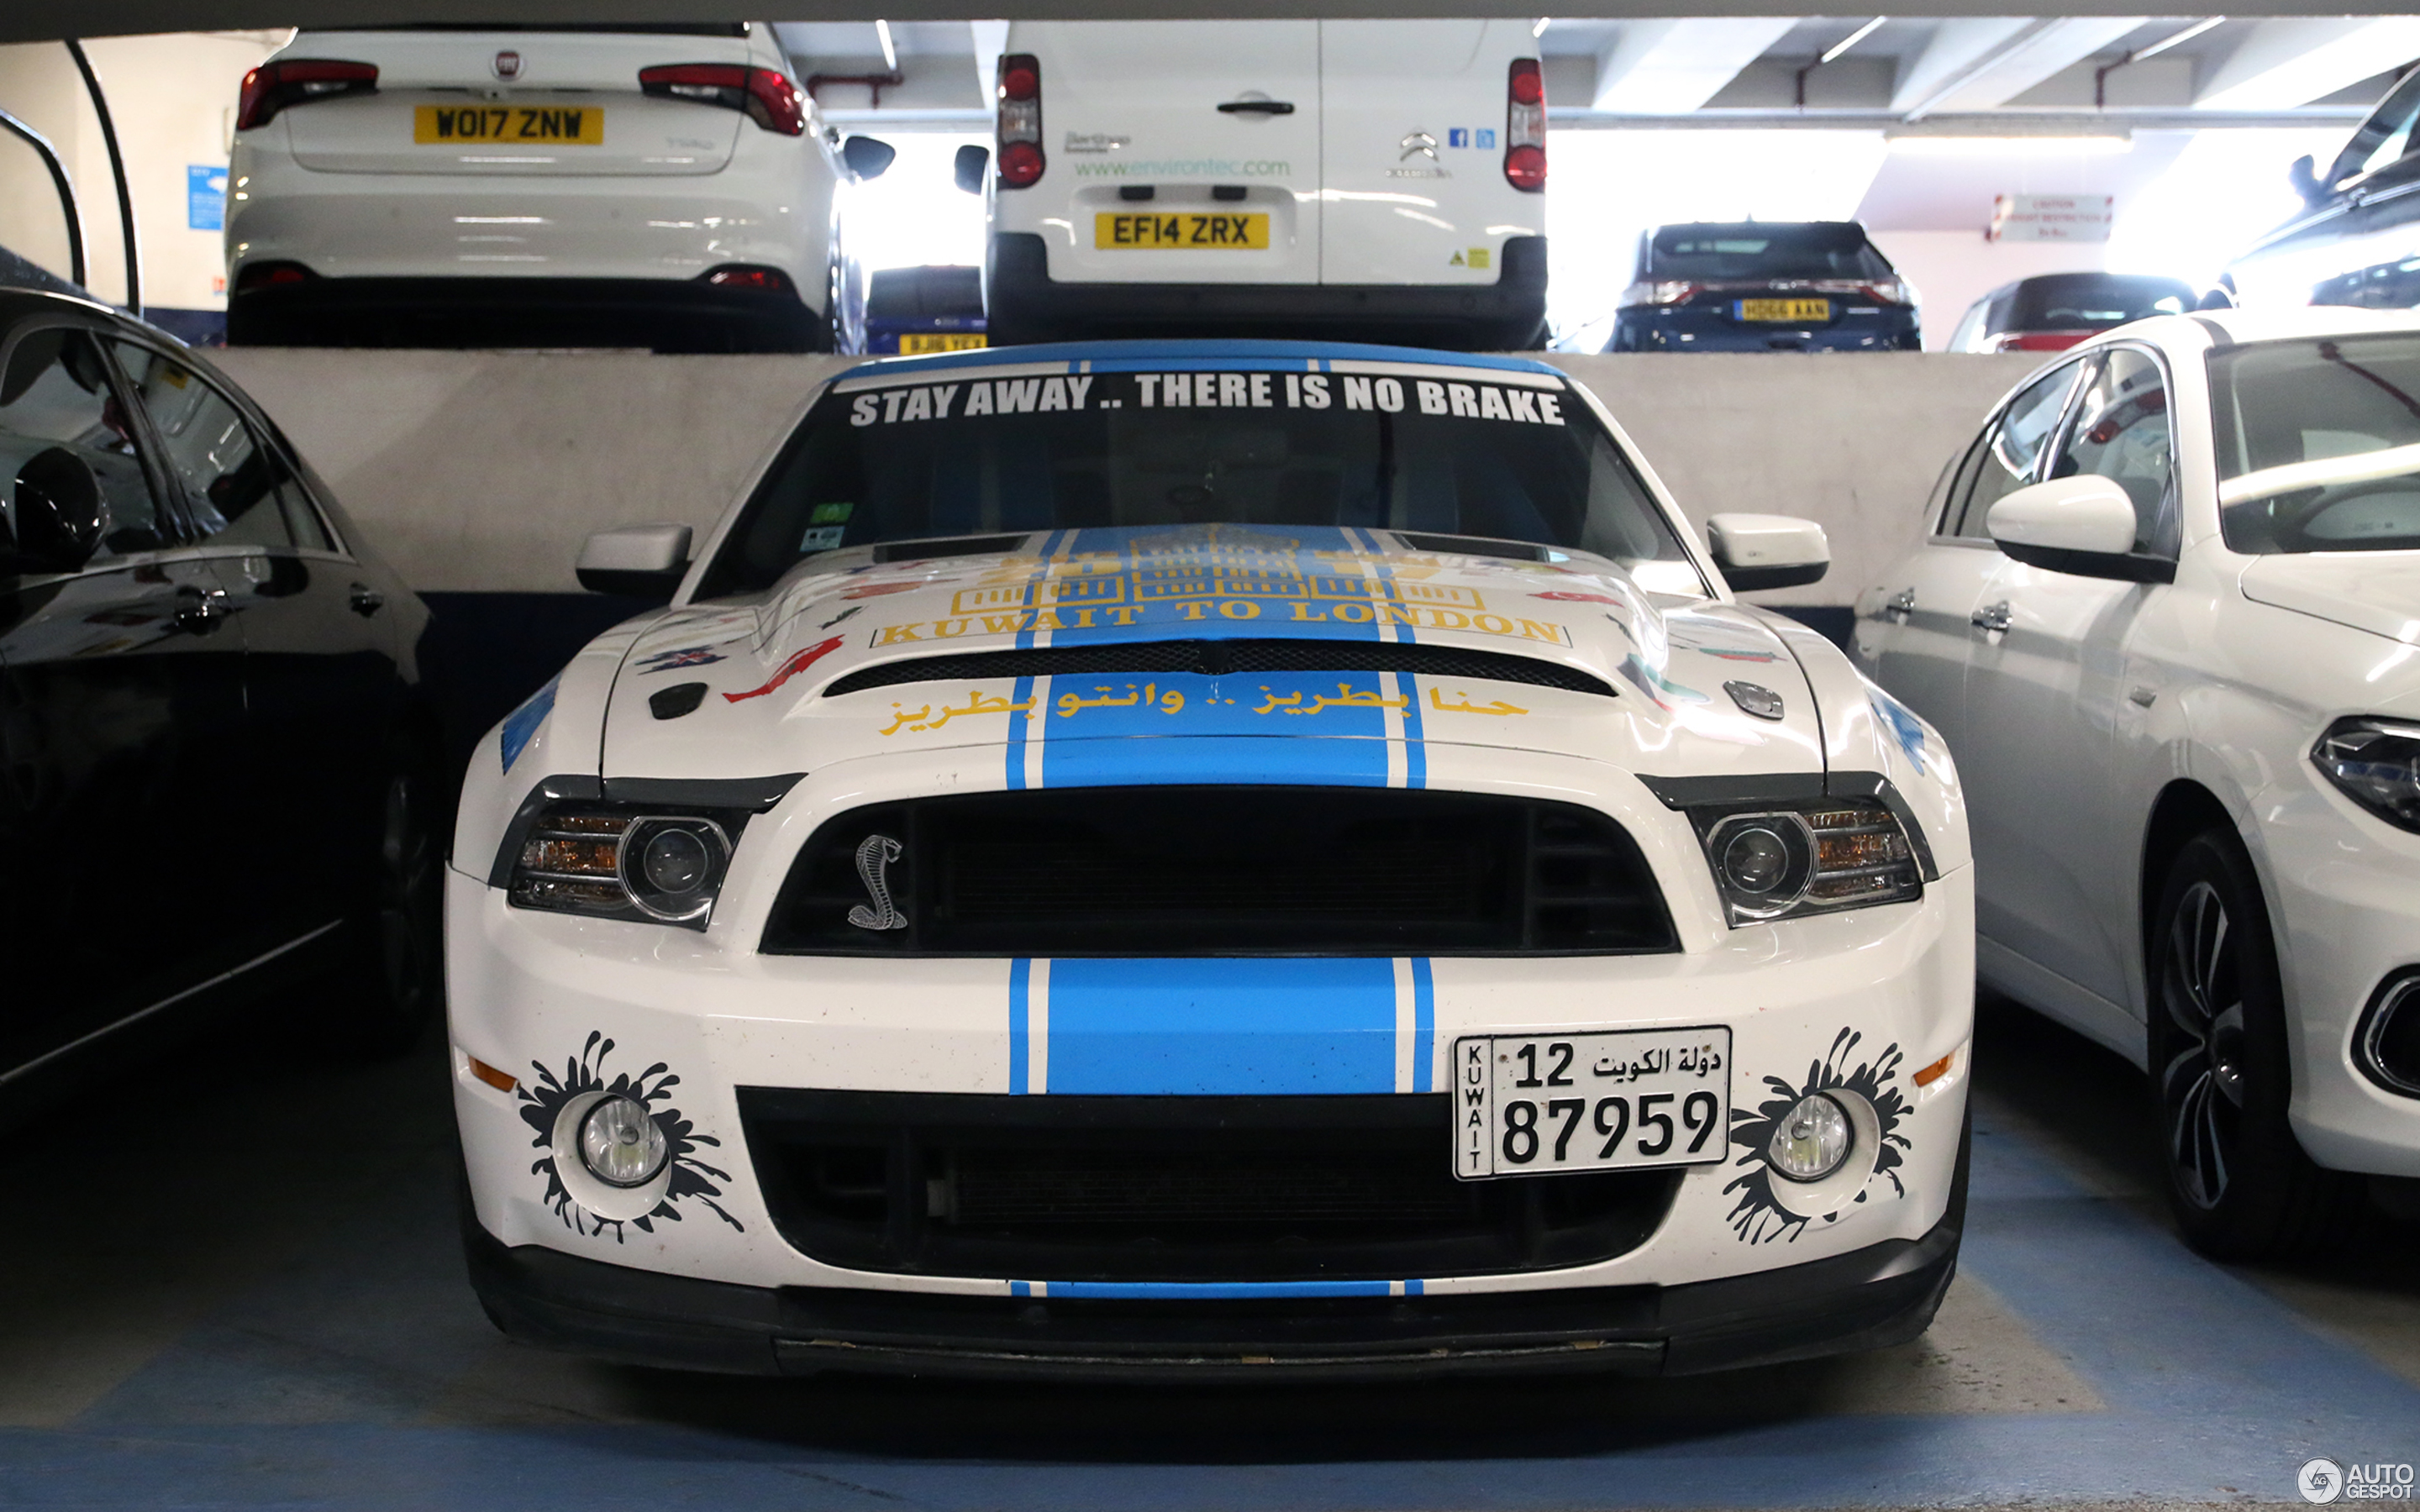 Super Snake F 150 >> Ford Mustang Shelby GT500 Super Snake Convertible 2014 - 26 January 2018 - Autogespot